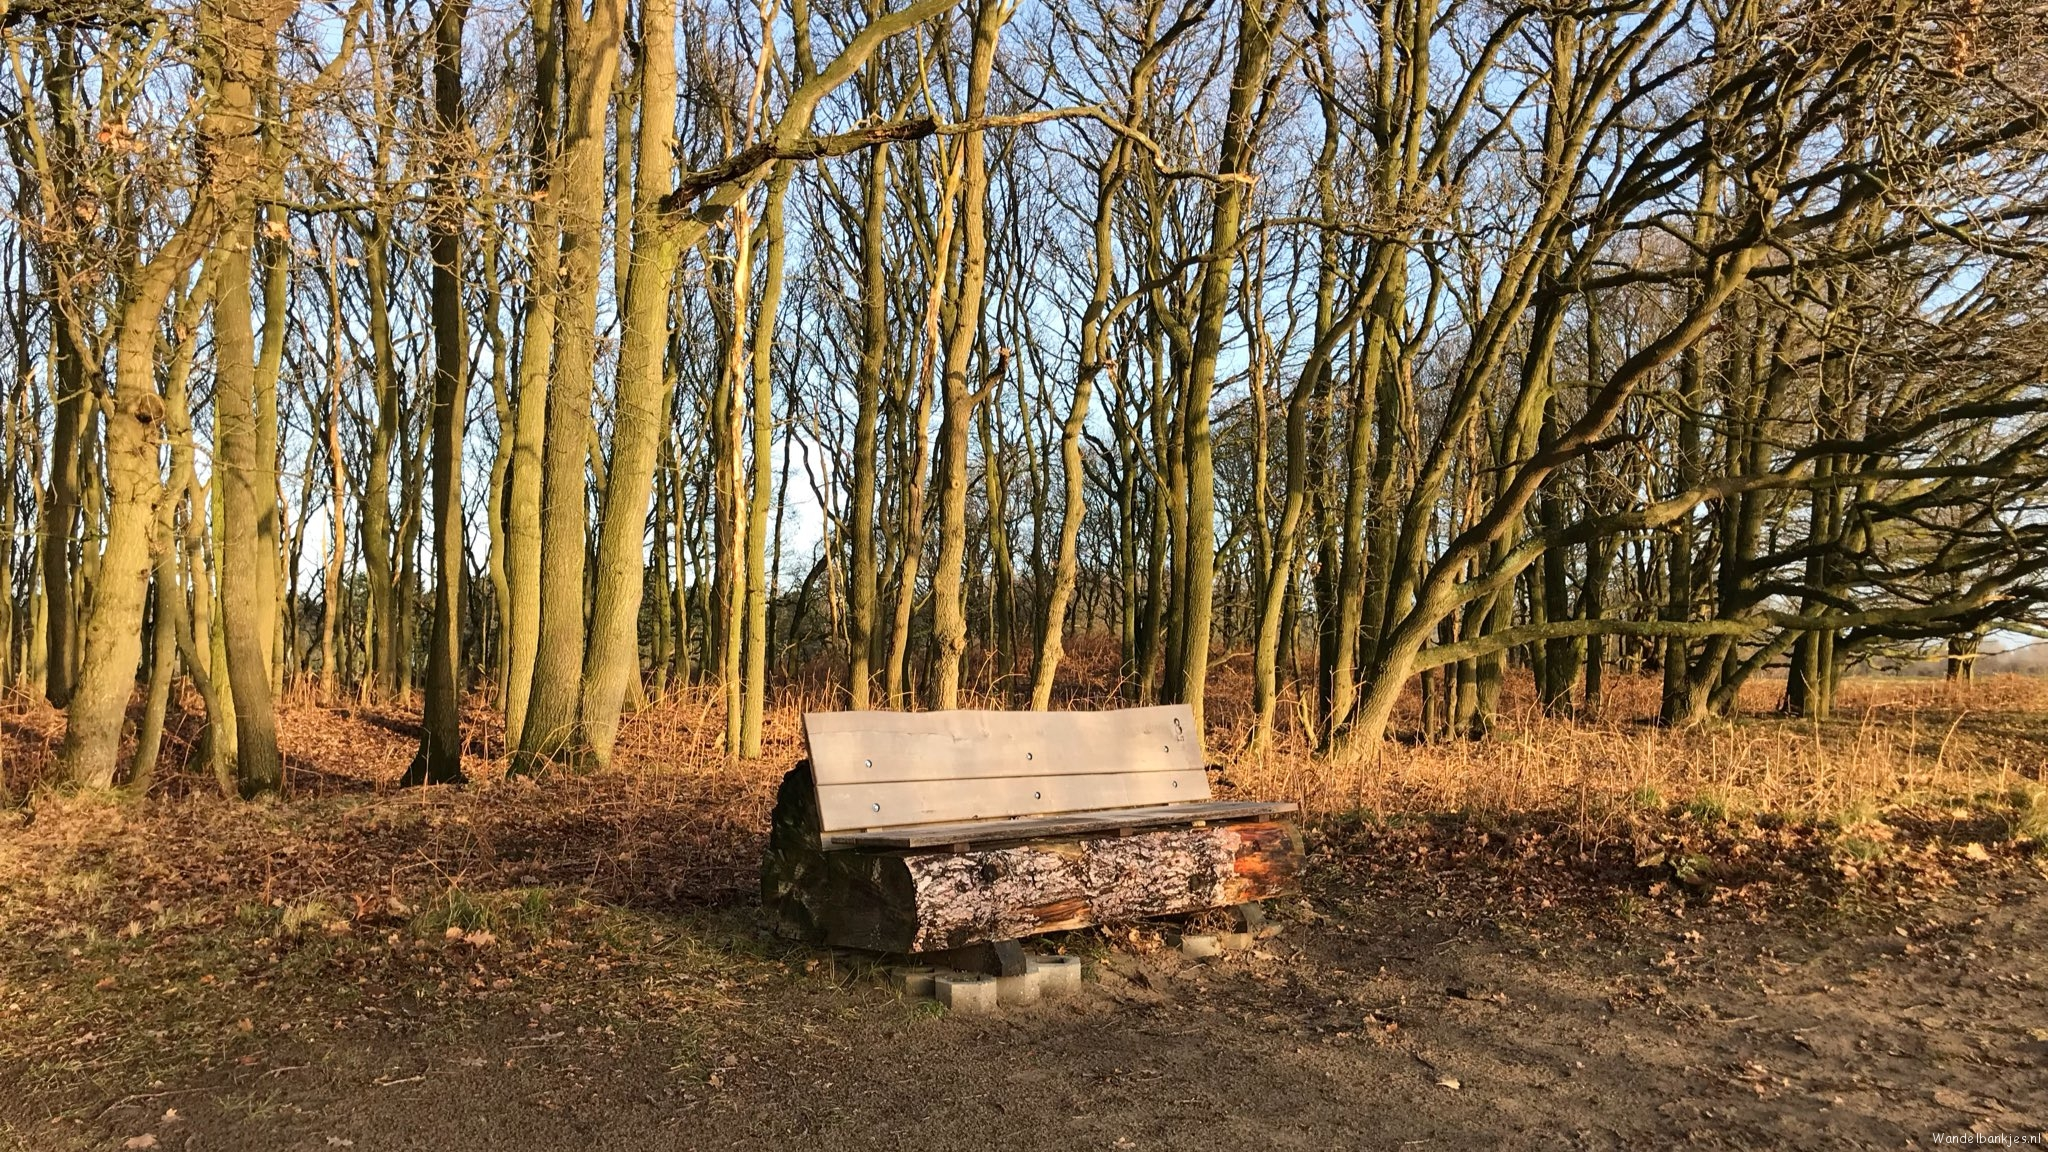 rt-boerleen-just-enjoyed-of-this-walk-bench-in-the-amsterdam-waterleidingduinen-at-the-zilkawd-hikes-dunes-https-t